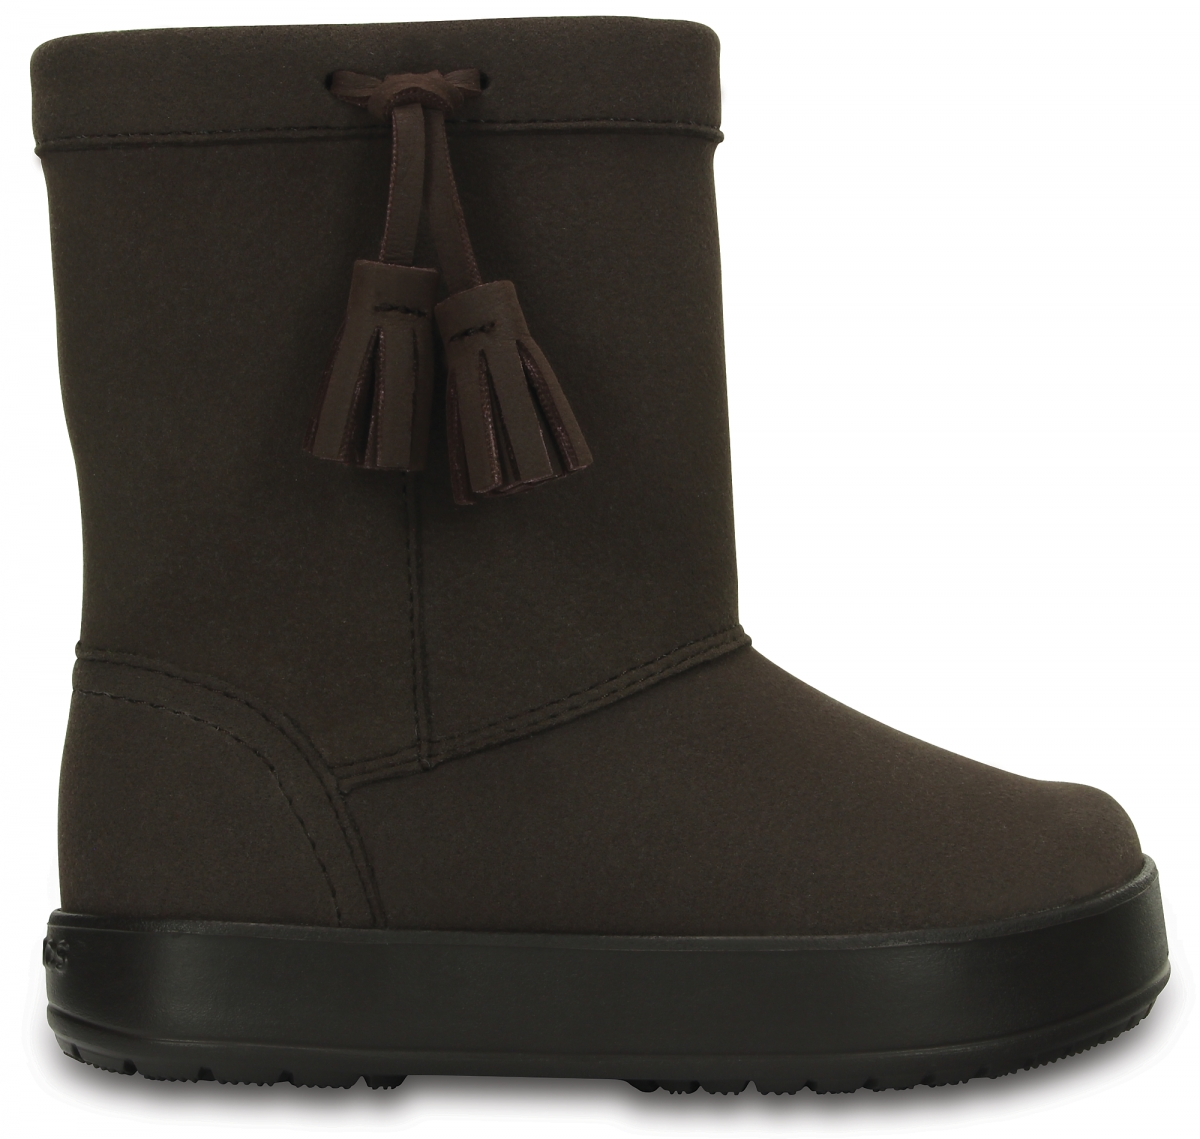 Crocs LodgePoint Boot Kids - Espresso, J1 (32-33)